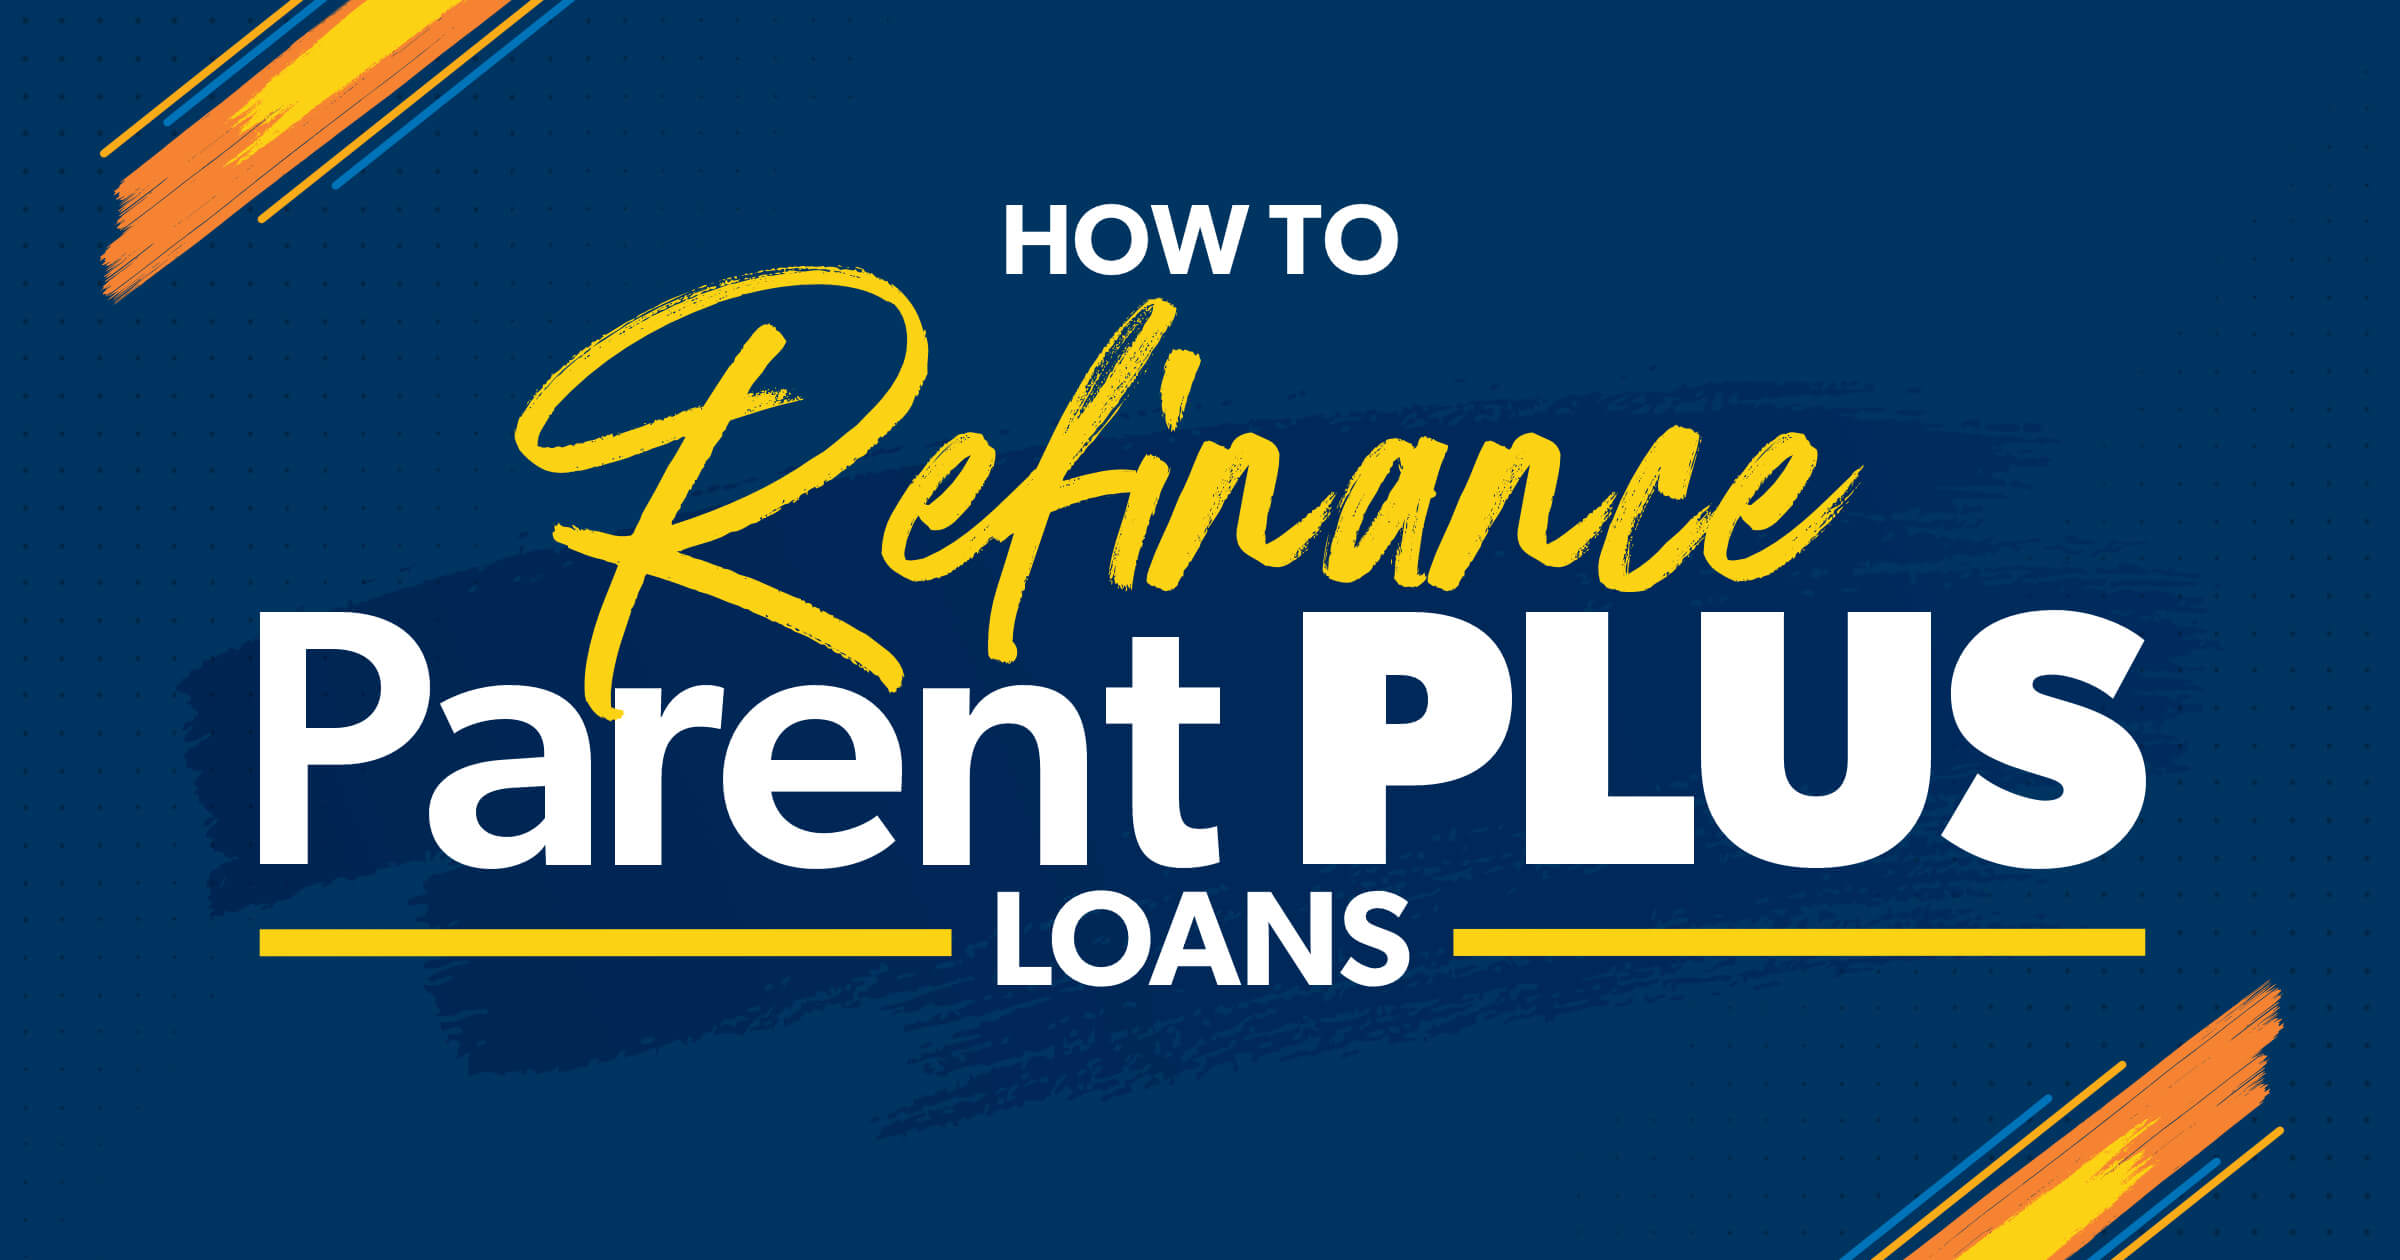 How to Refinance Parent Plus Loans